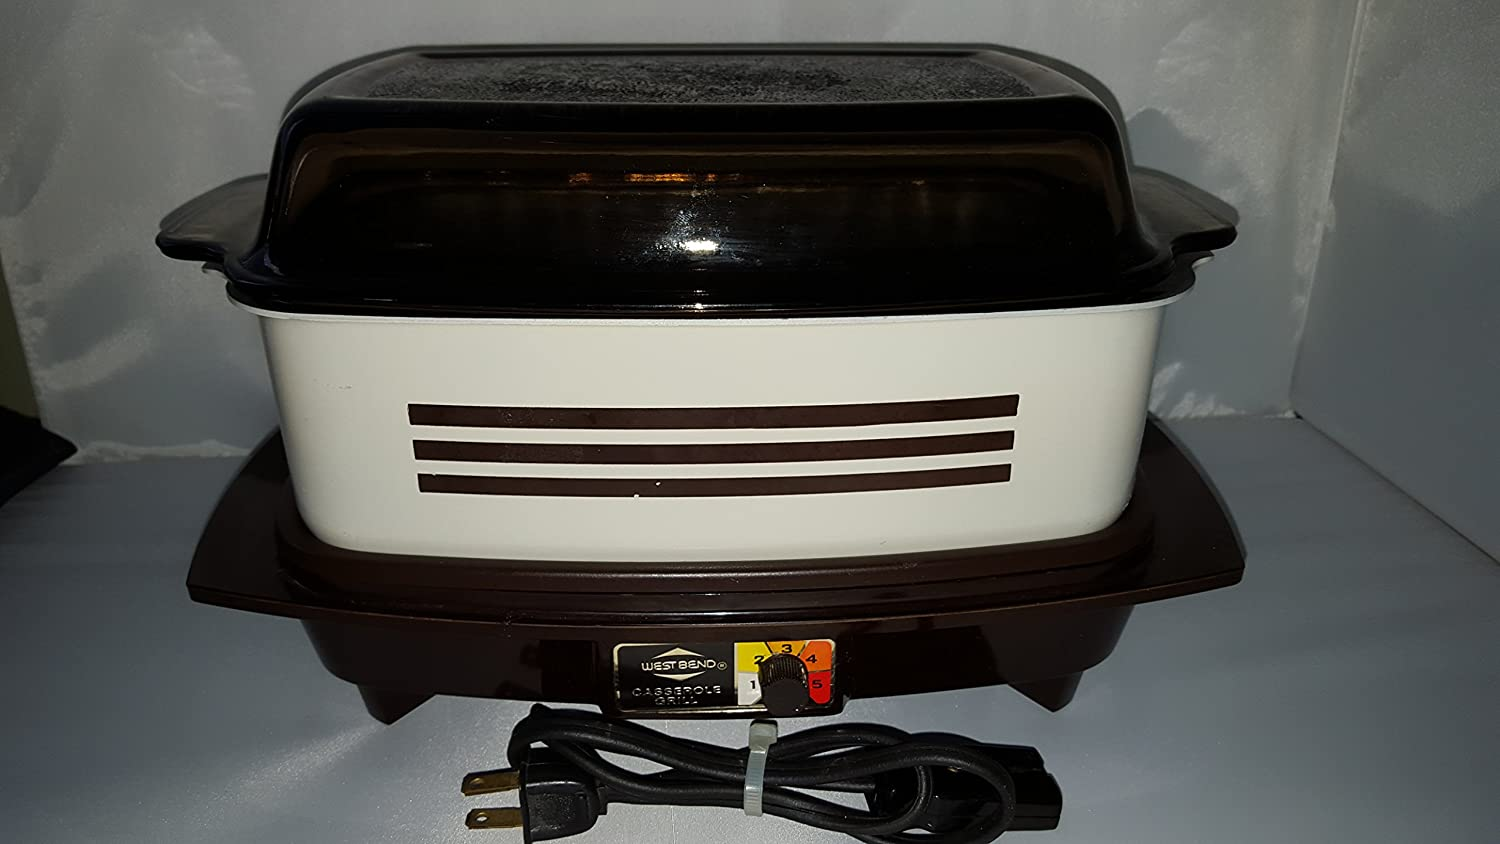 Vintage West Bend Slow Cooker Crock Pot Type 4 Quart